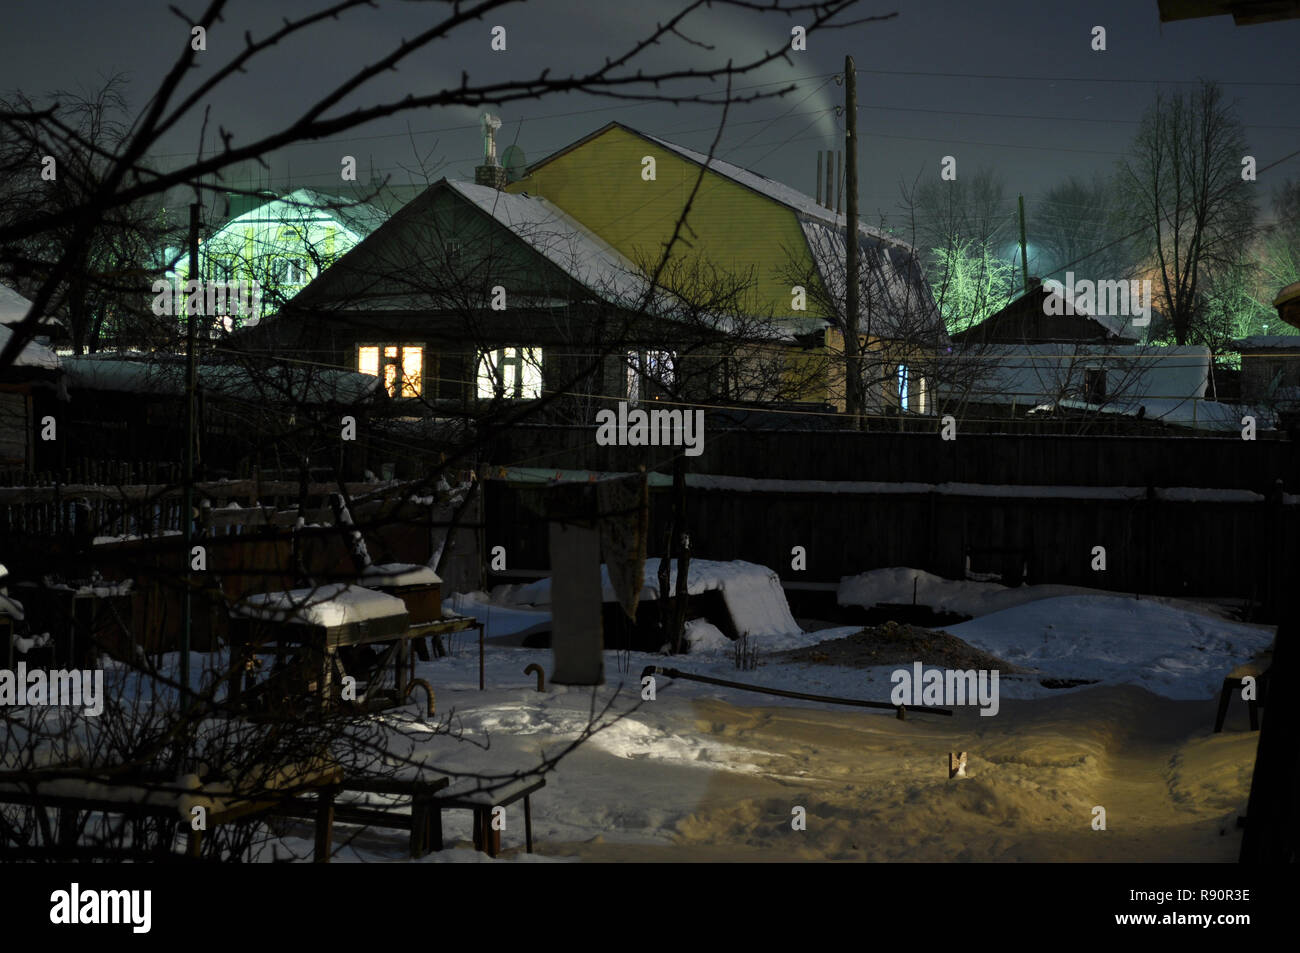 Kovrov, Russia. 24 January 2010. Courtyard of single storey old wooden house in the late evening - Stock Image